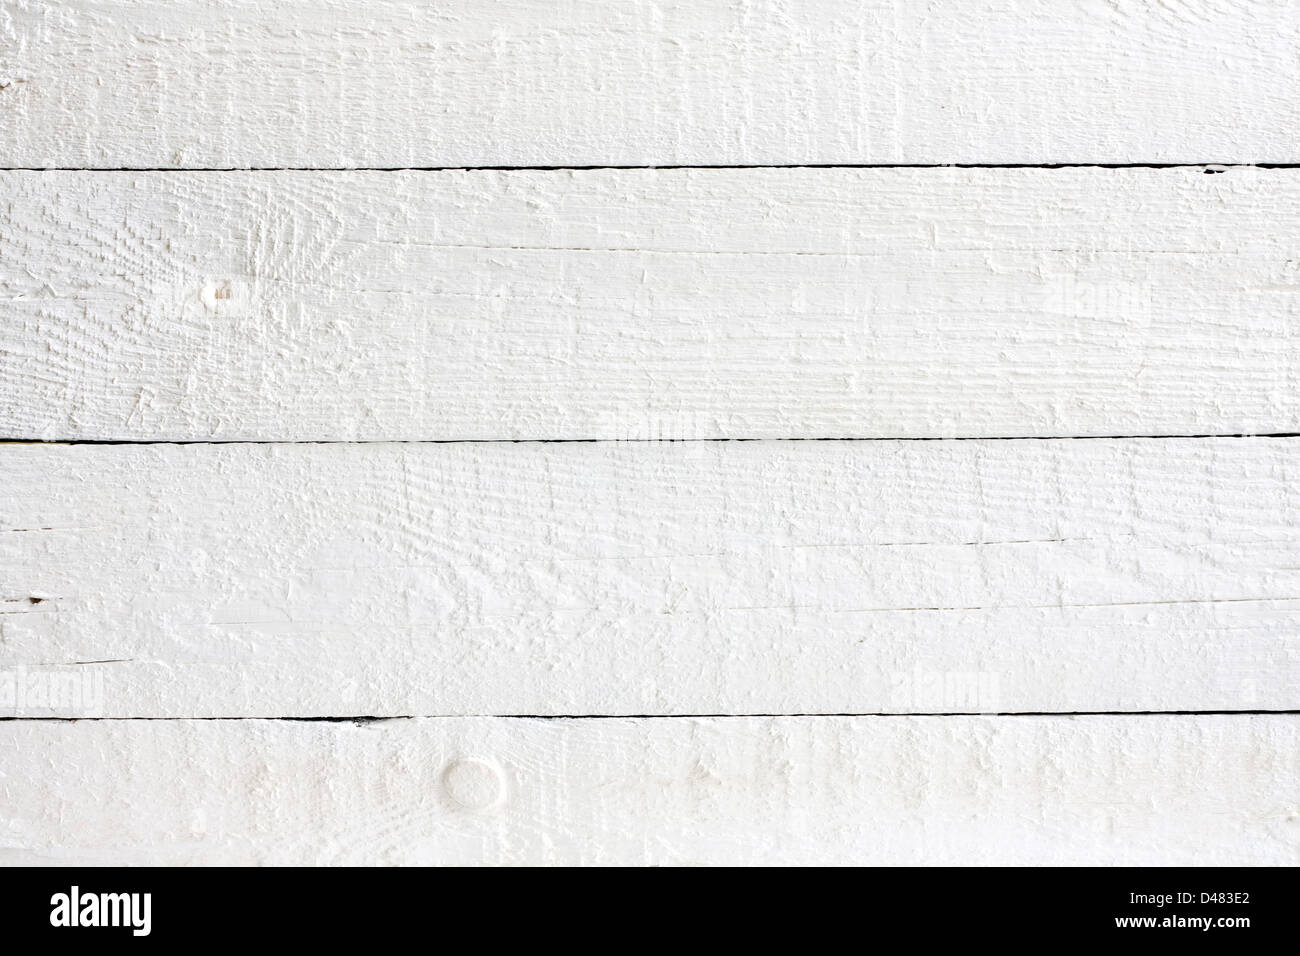 Ordinaire Old Retro White Painted Wooden Planks Background   Stock Image